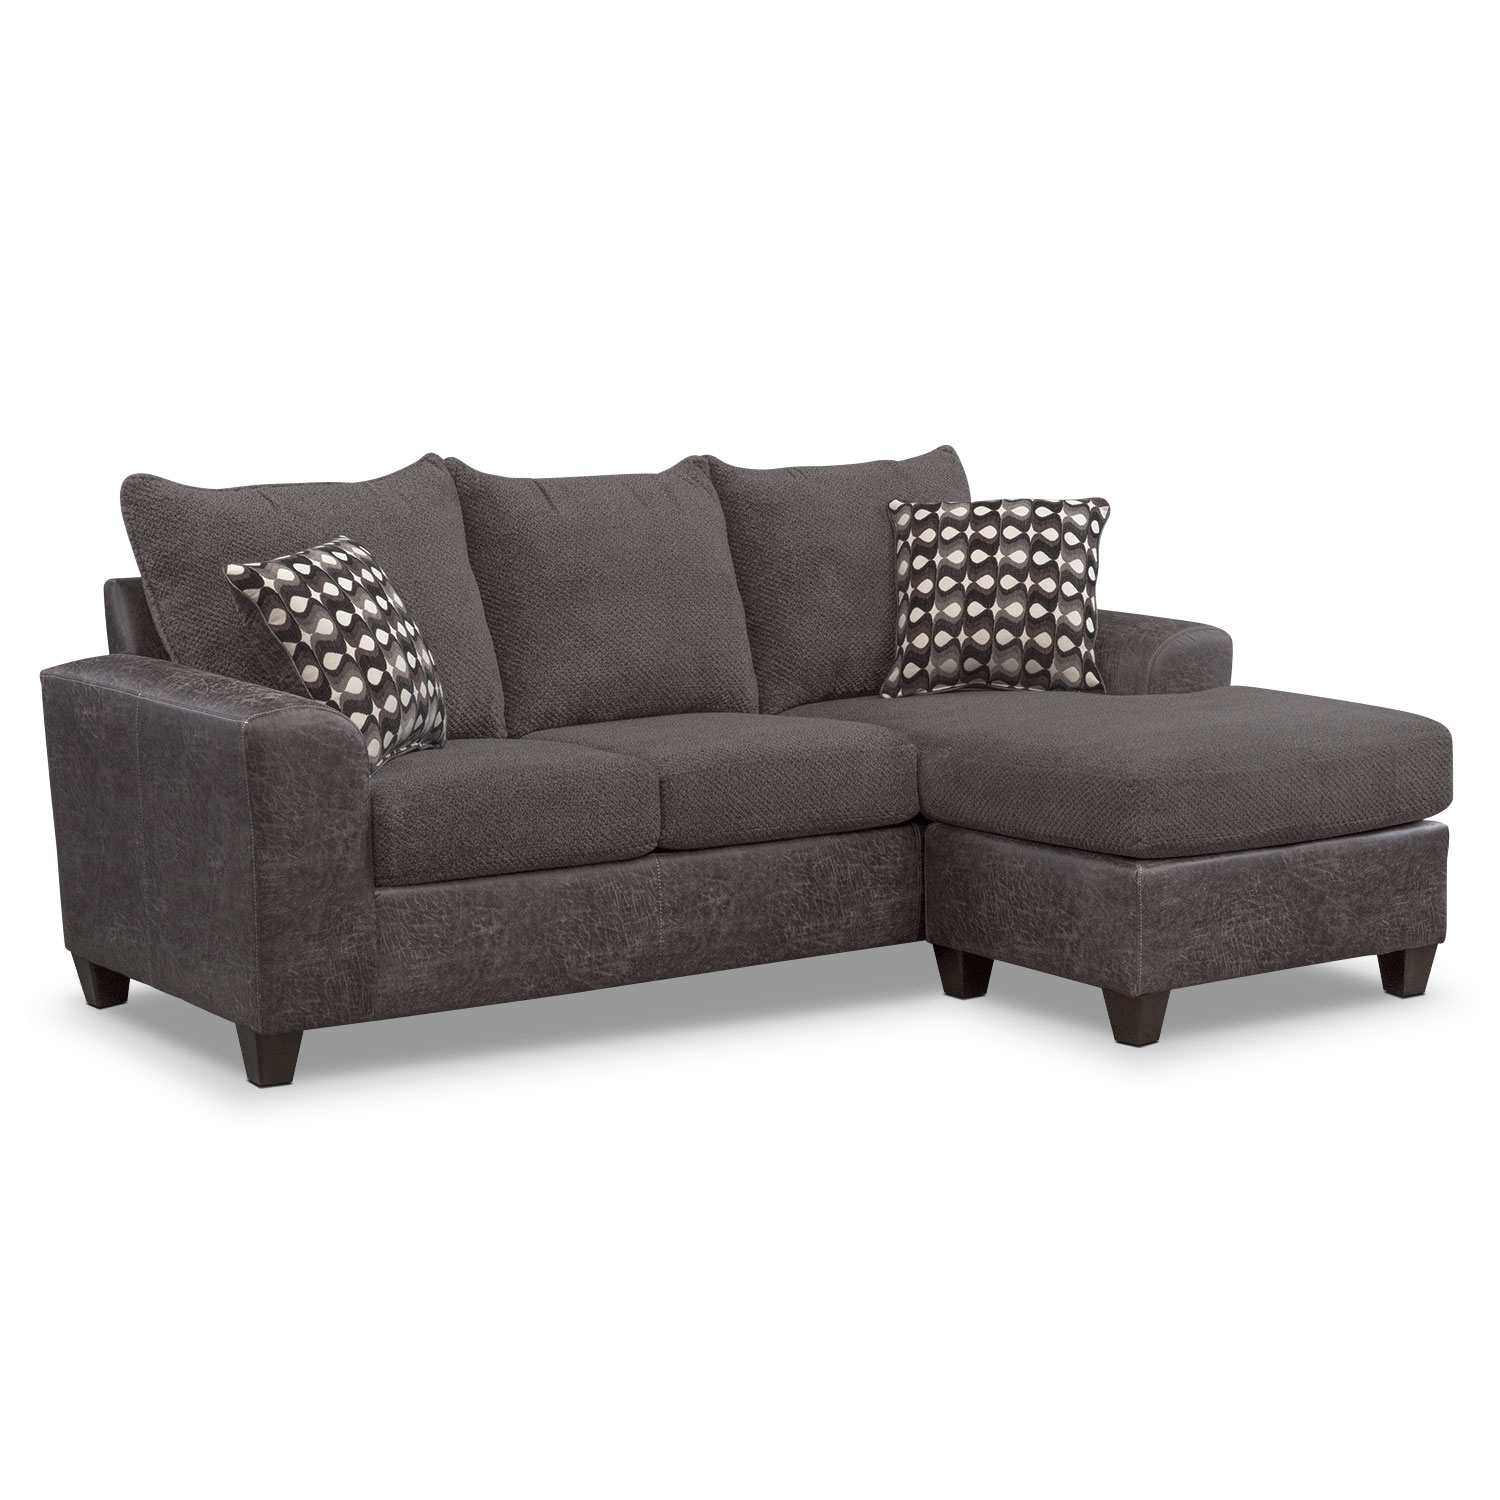 Sofas And Couches | Living Room Seating | Value City Furniture And intended for Marcus Chocolate 6 Piece Sectionals With Power Headrest And Usb (Image 24 of 30)